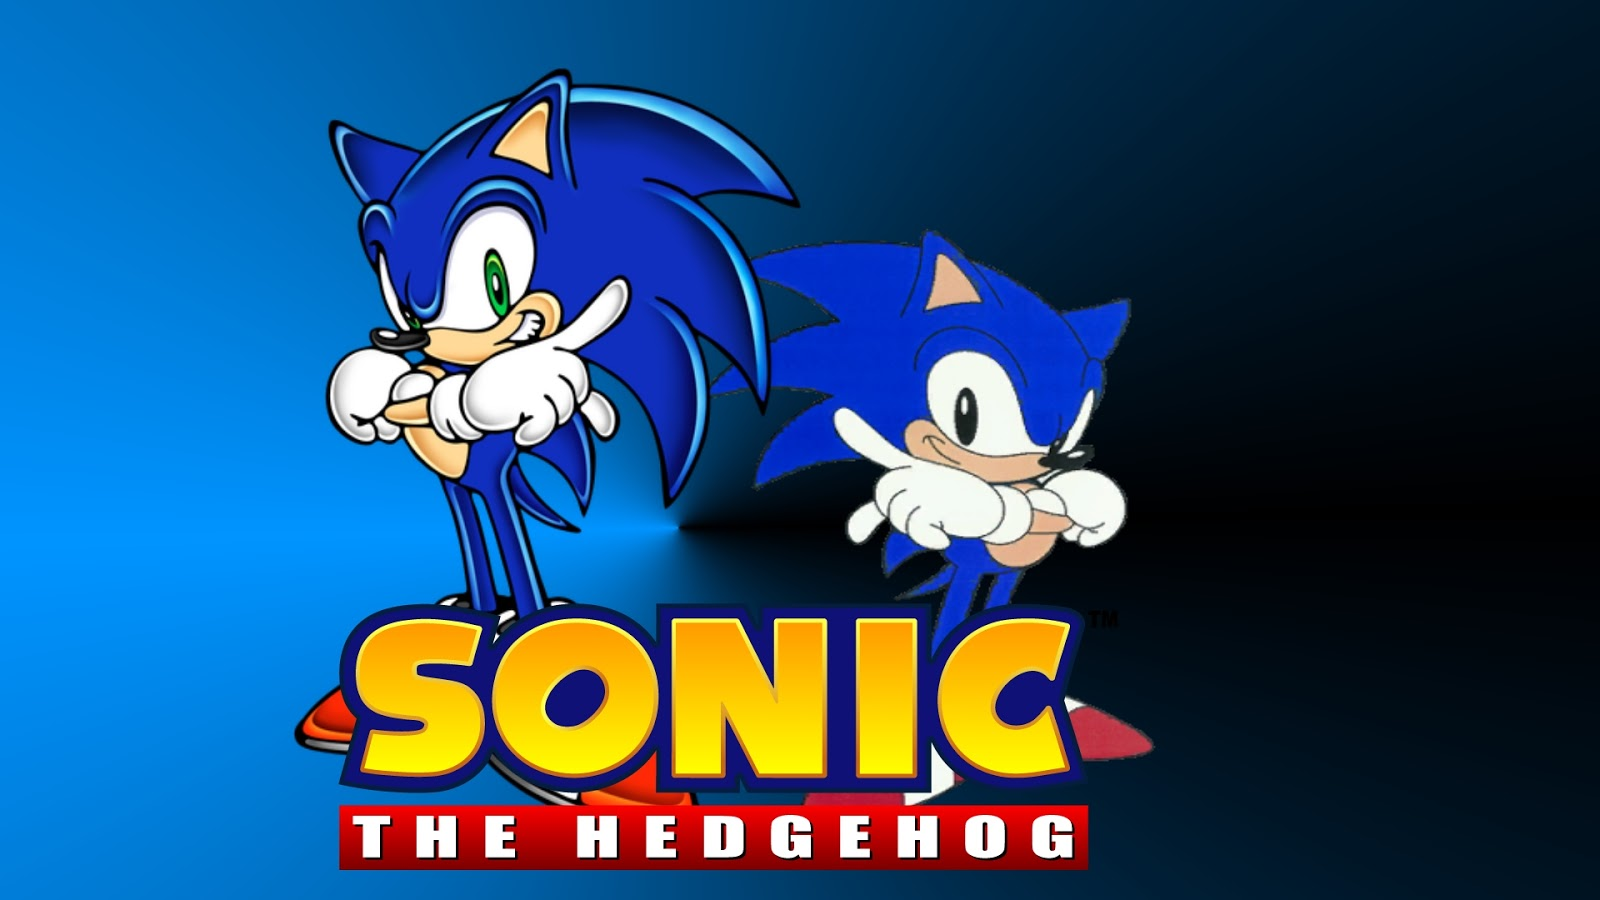 Cool Sonic The Hedgehog Wallpaper Www Tollebild Com